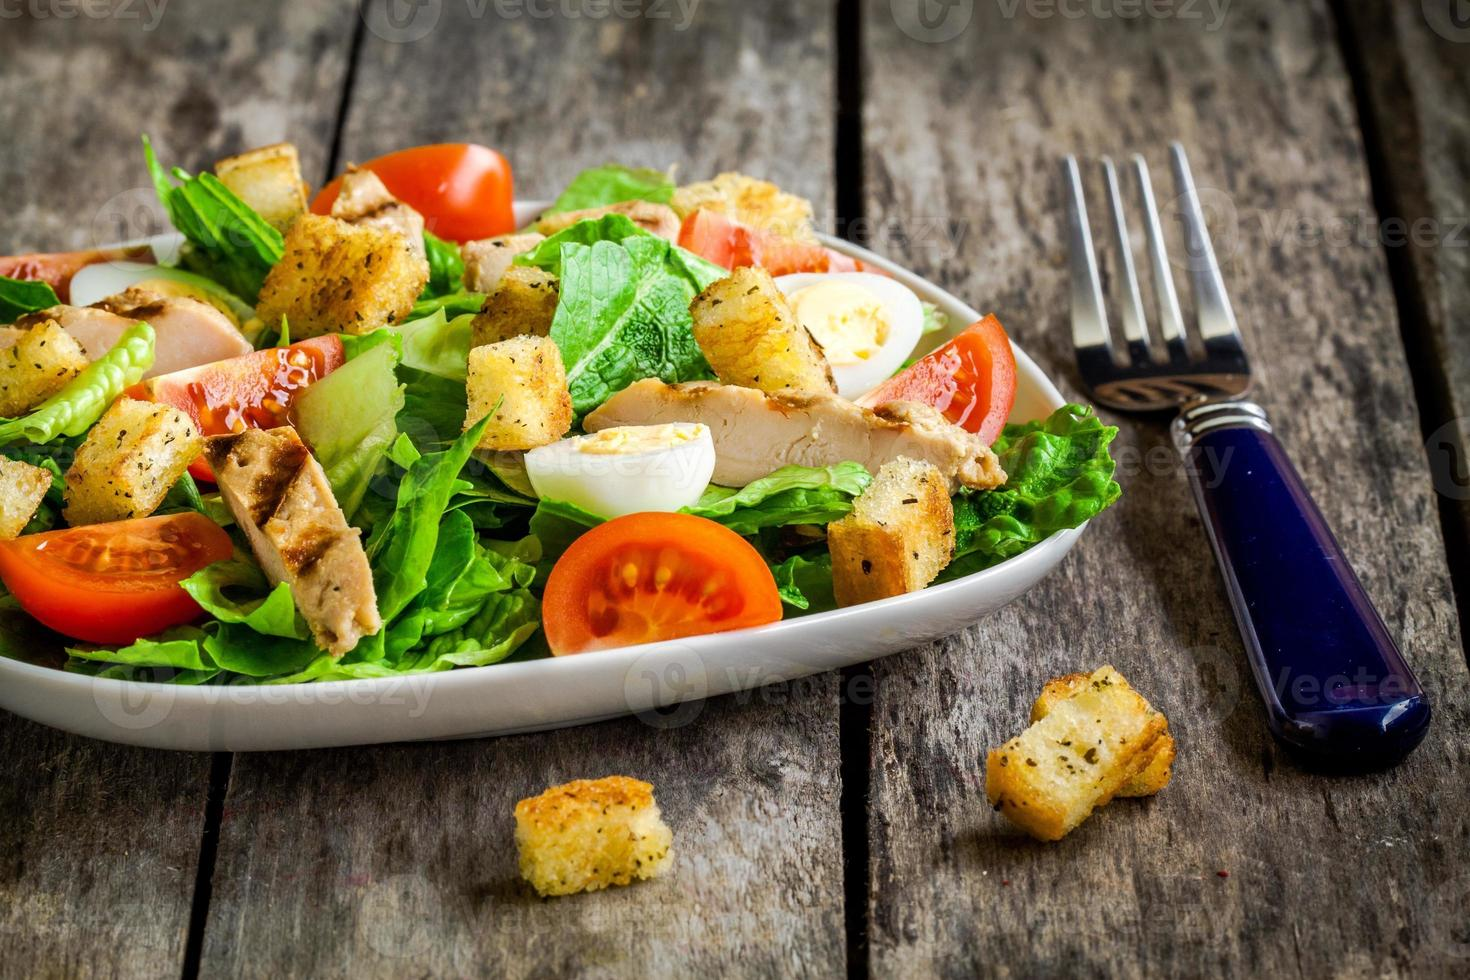 Caesar salad with croutons, quail eggs, tomatoes and grilled chicken photo